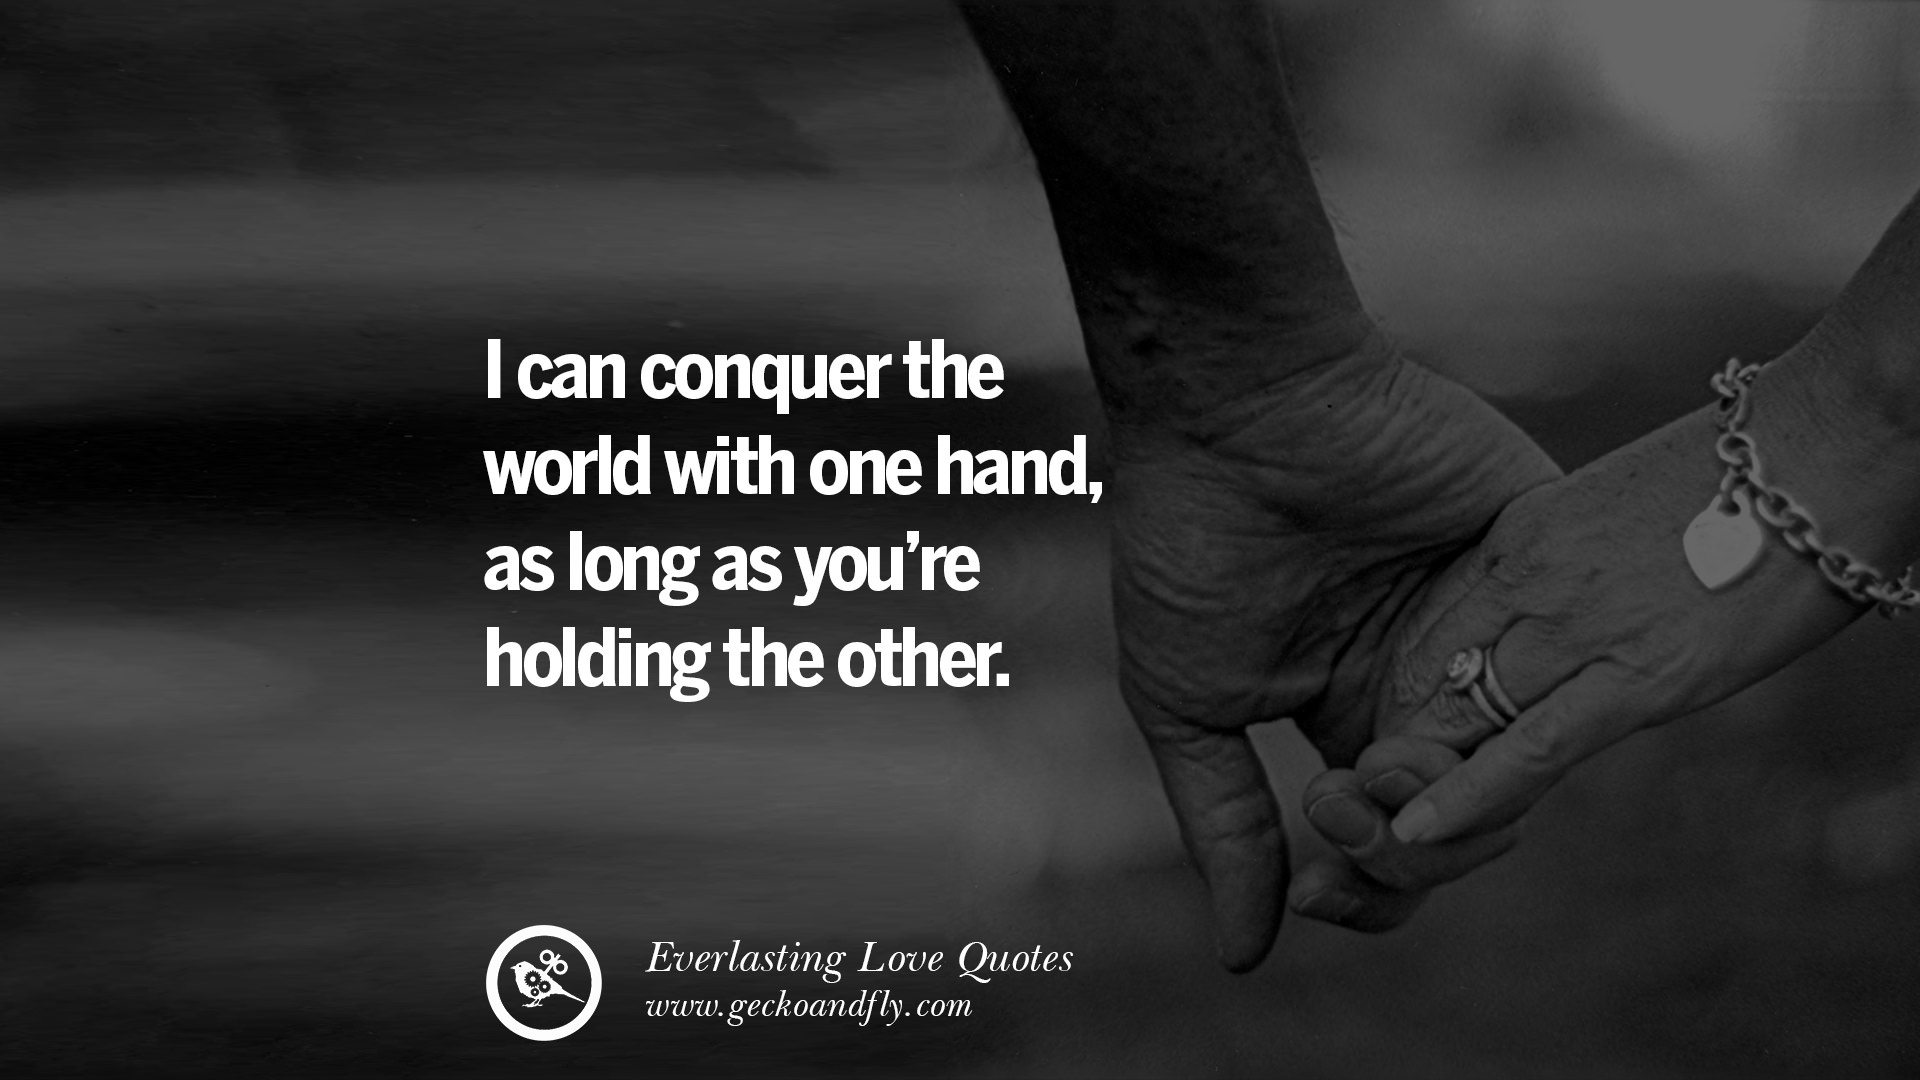 Quotes About Love For Him 18 Romantic Love Quotes For Him And Her On Valentine Day